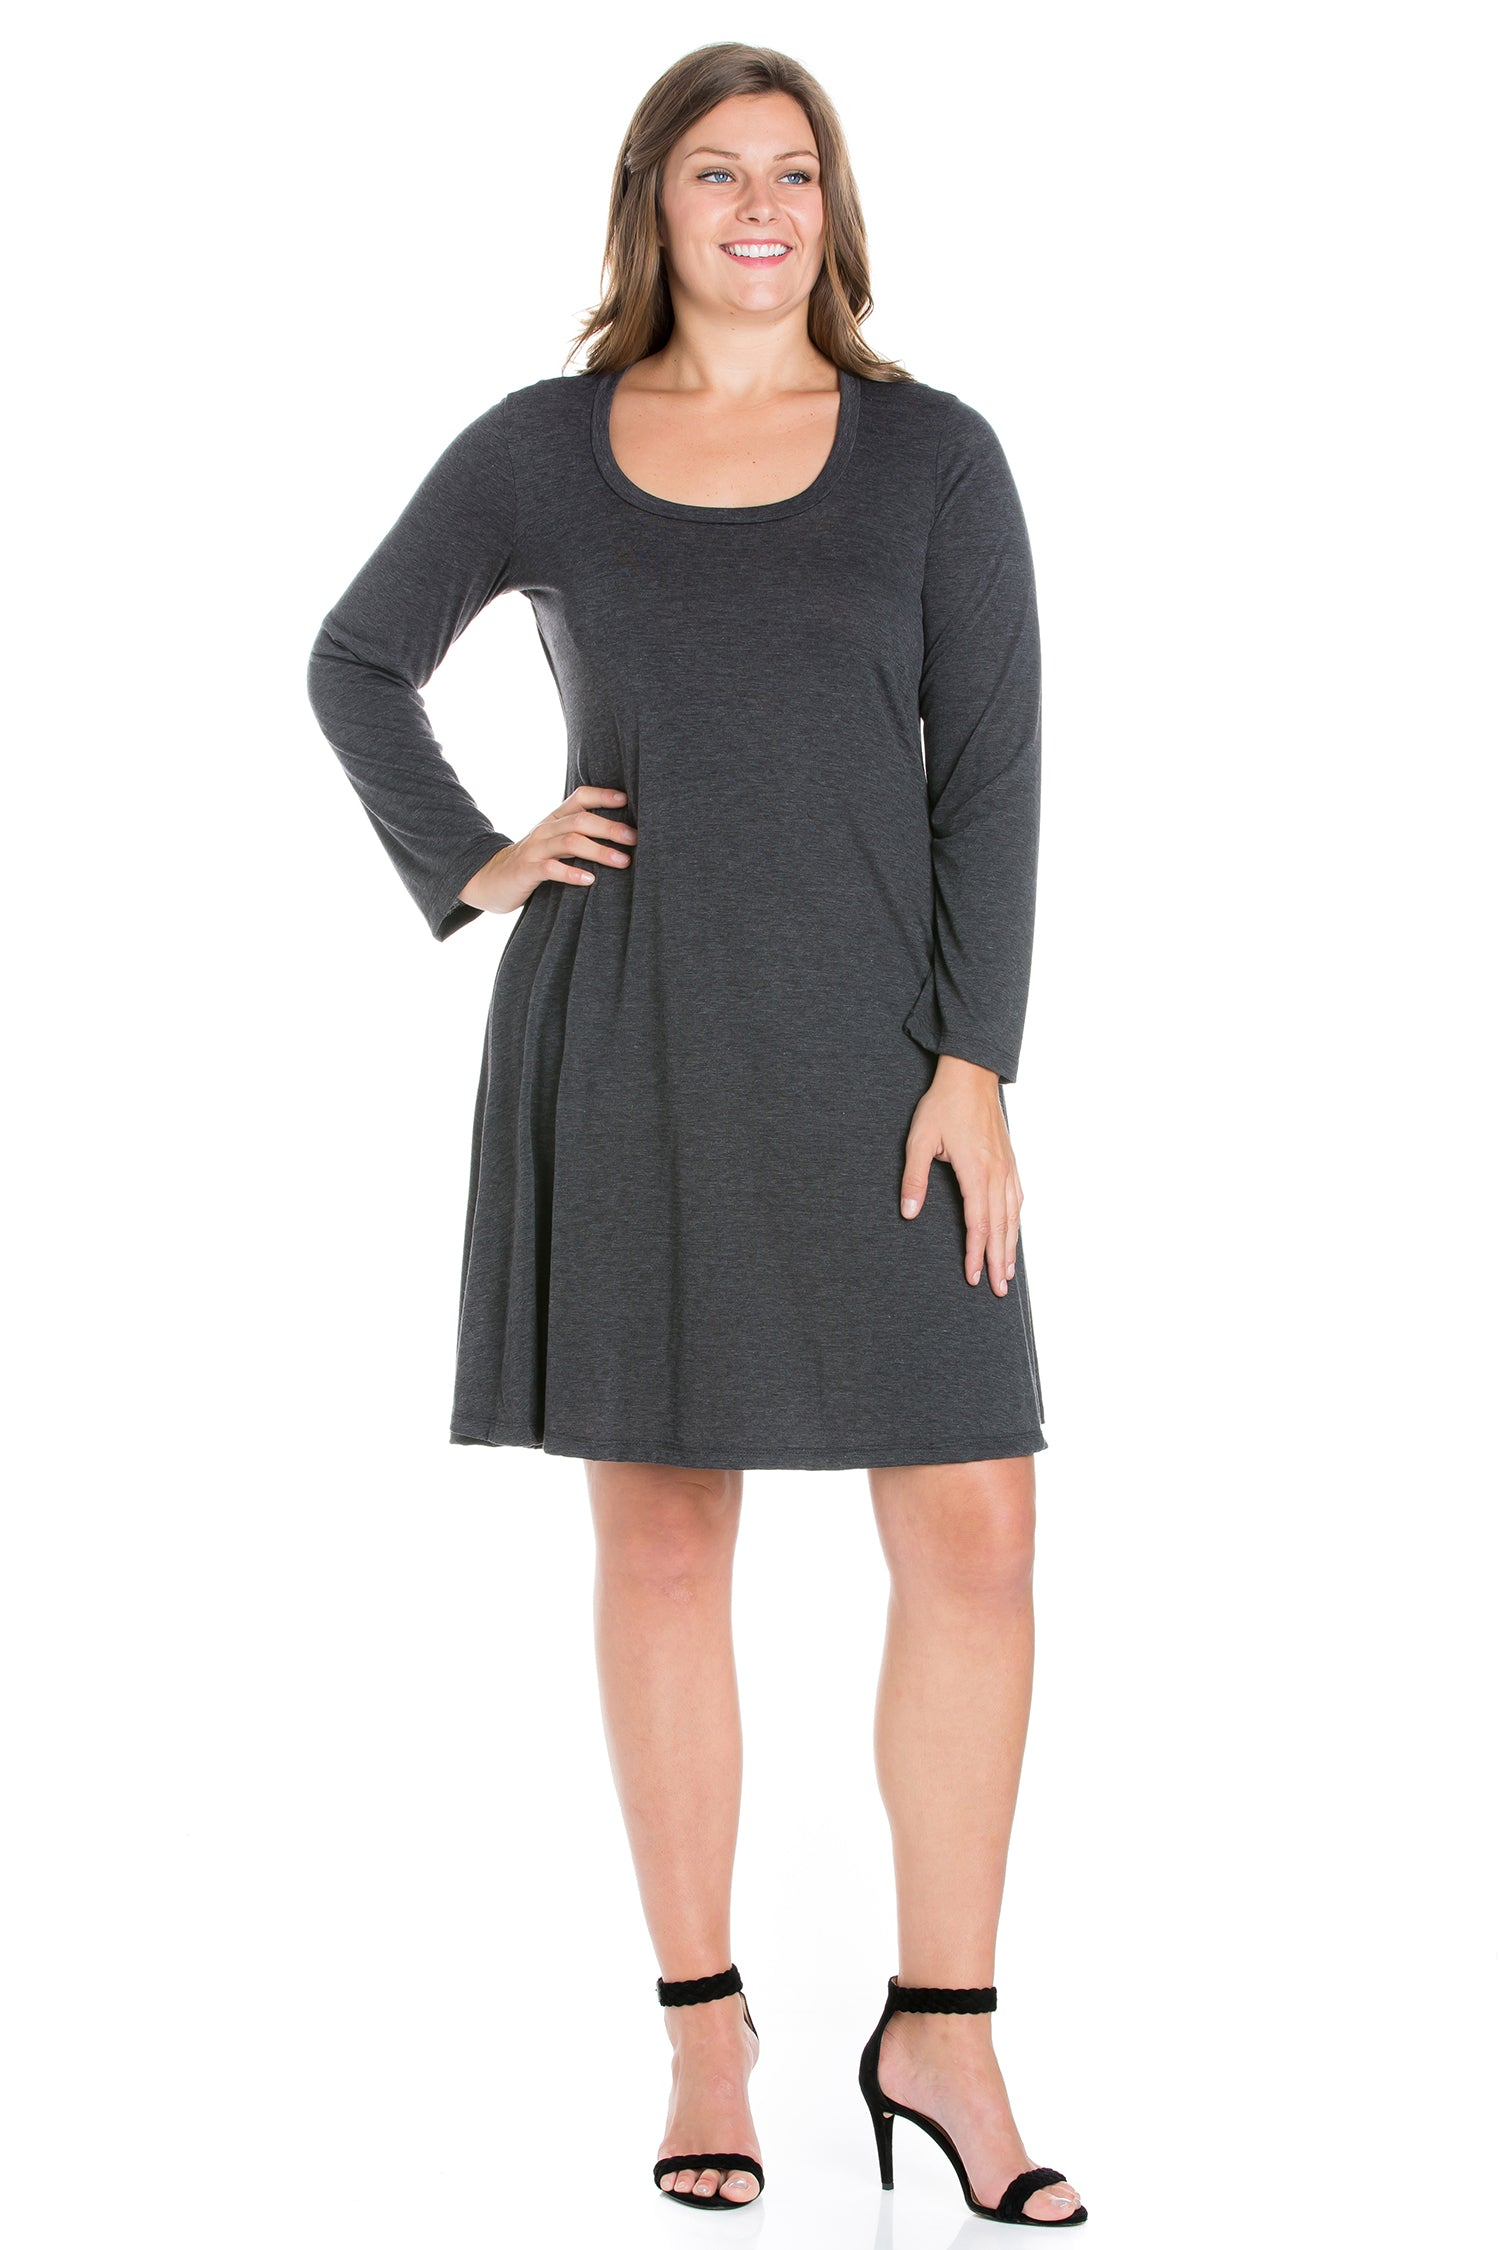 24seven Comfort Apparel Classic Long Sleeve Plus Size Flared Mini Dress-DRESSES-24Seven Comfort Apparel-BLACK-1X-24/7 Comfort Apparel